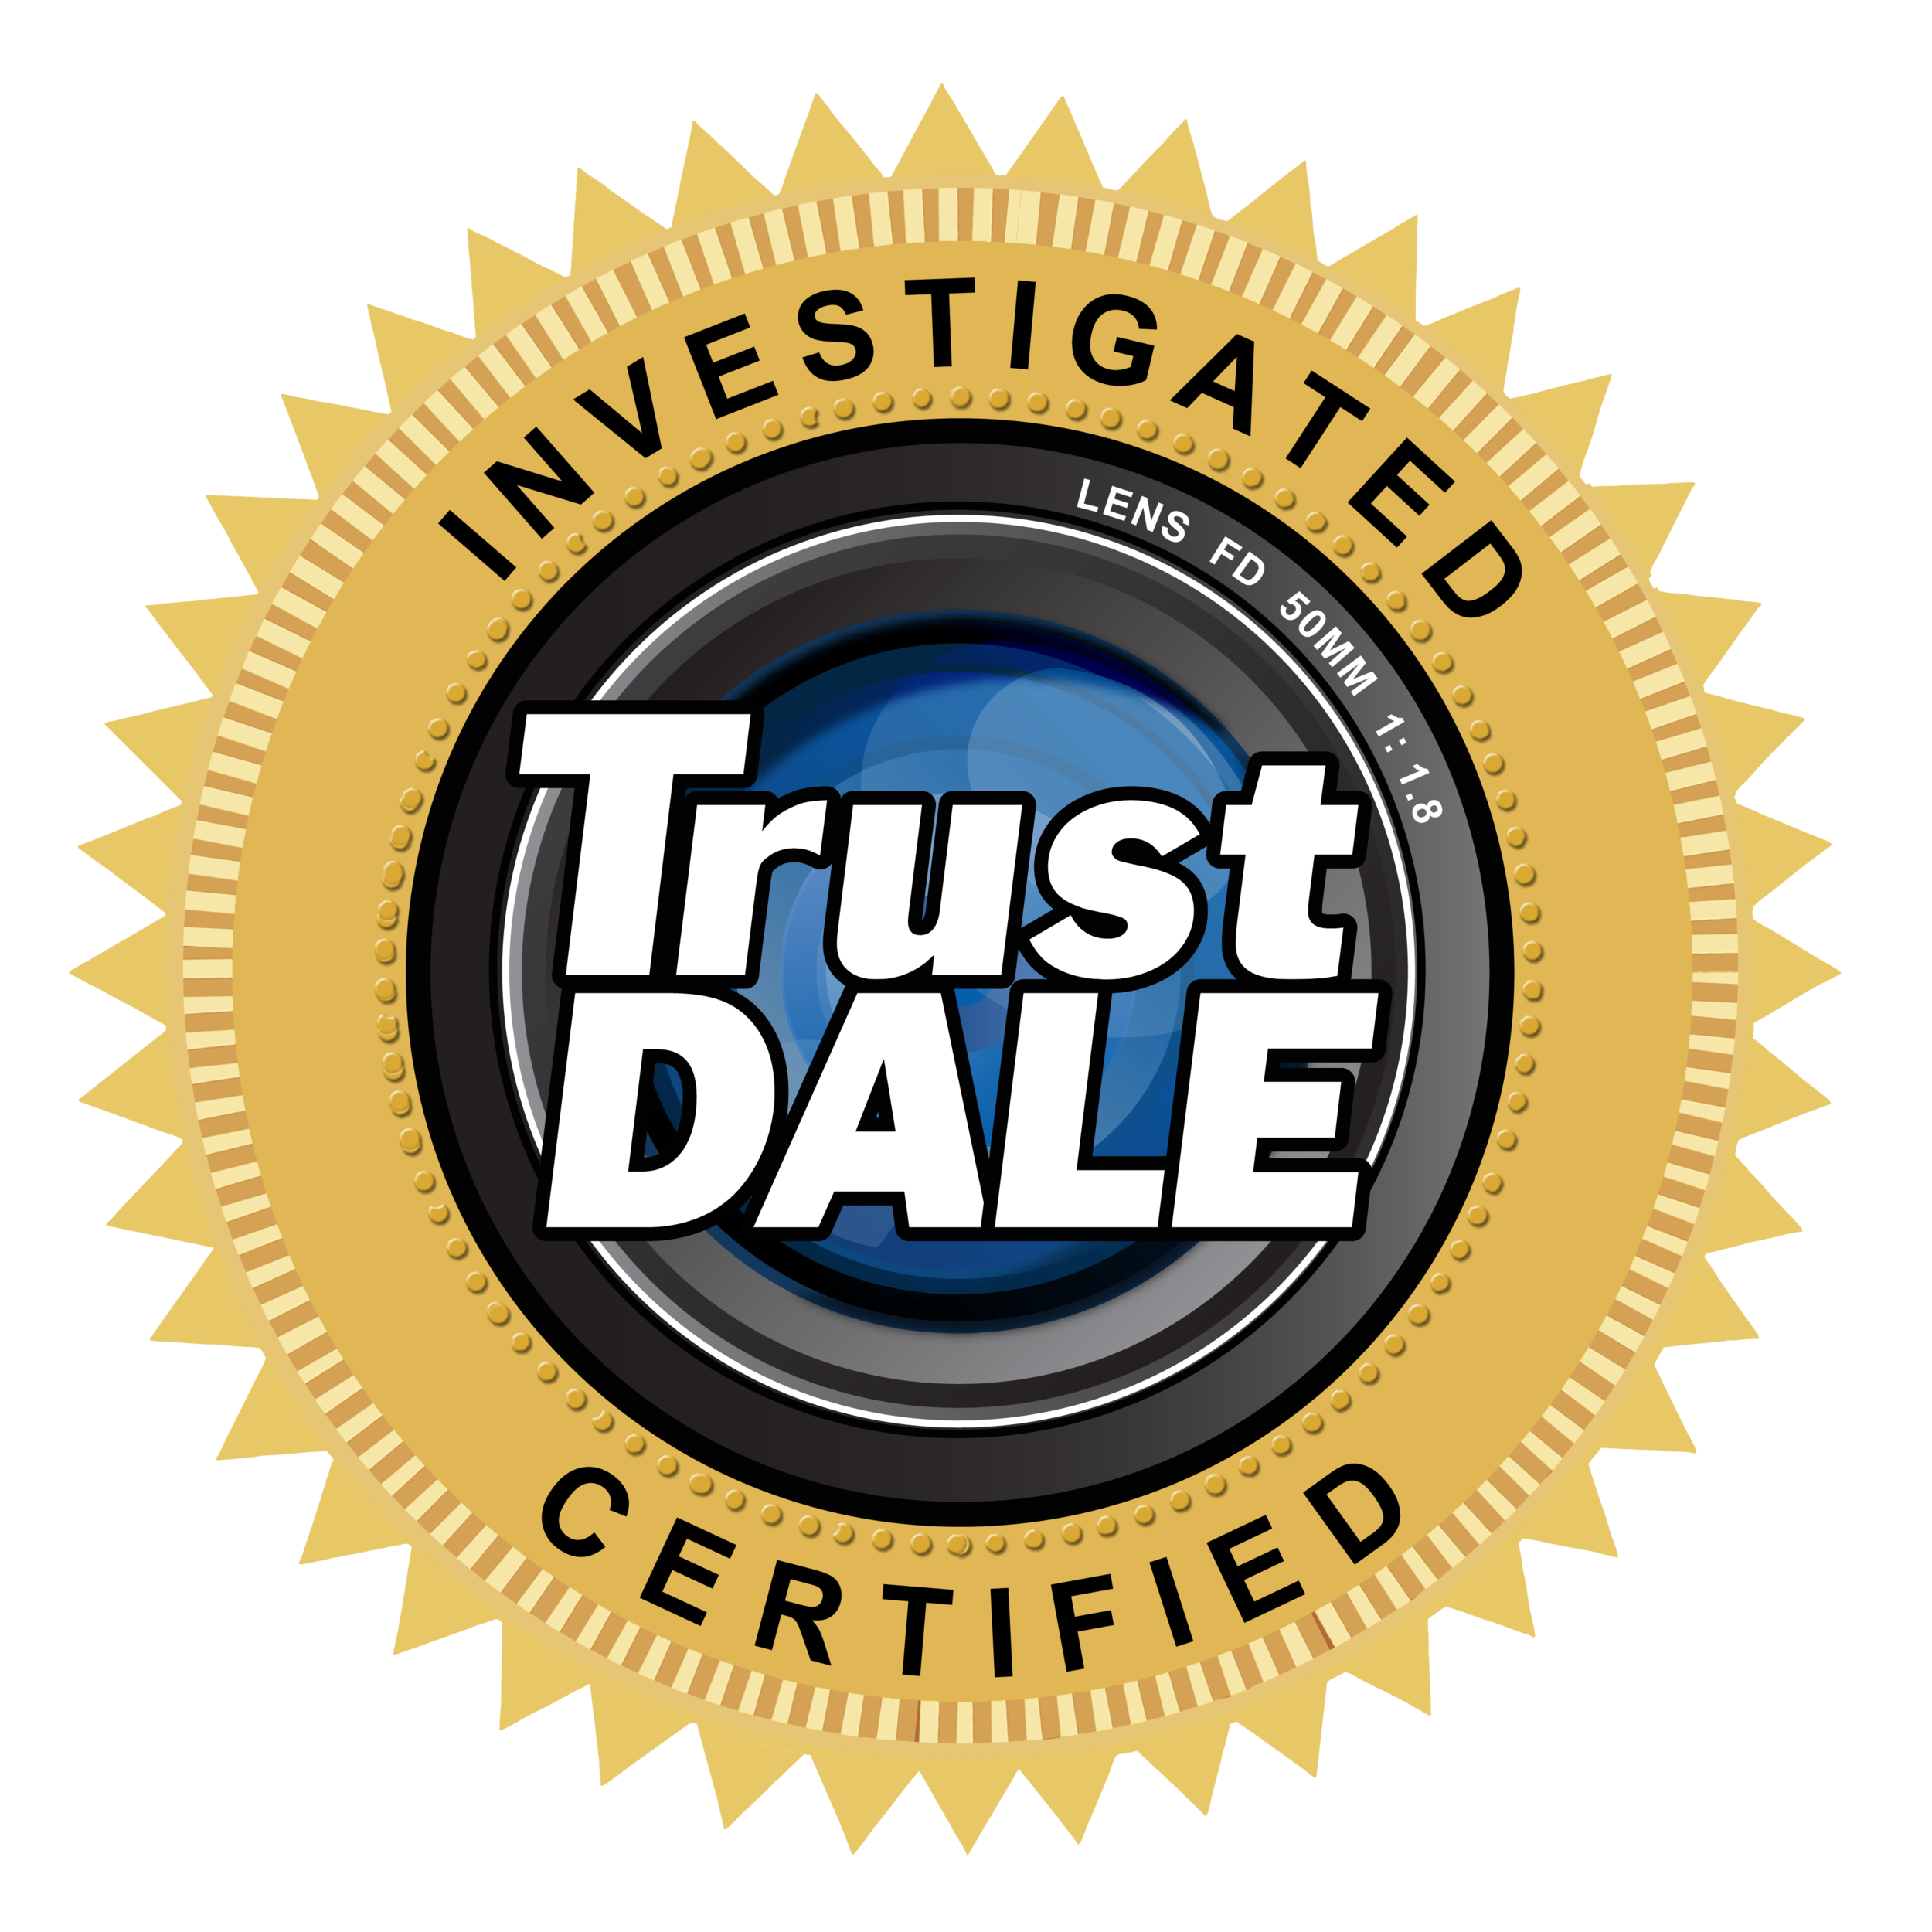 Looking for researched companies on our consumer referral site?  TrustDALE.com